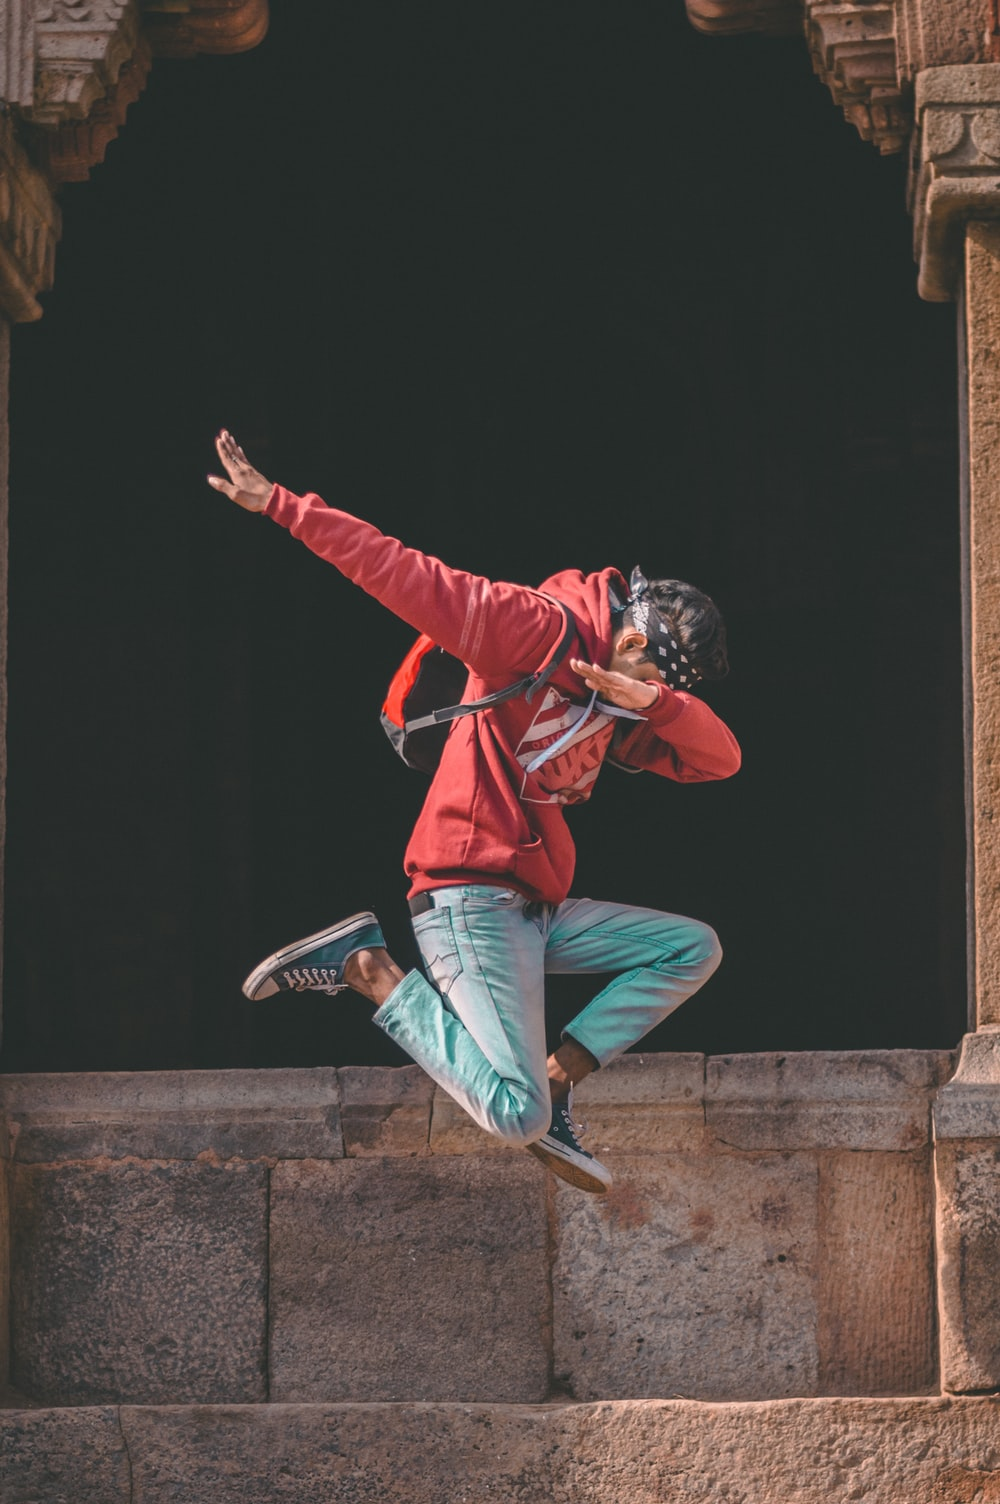 man jumping while raising hands in slant position